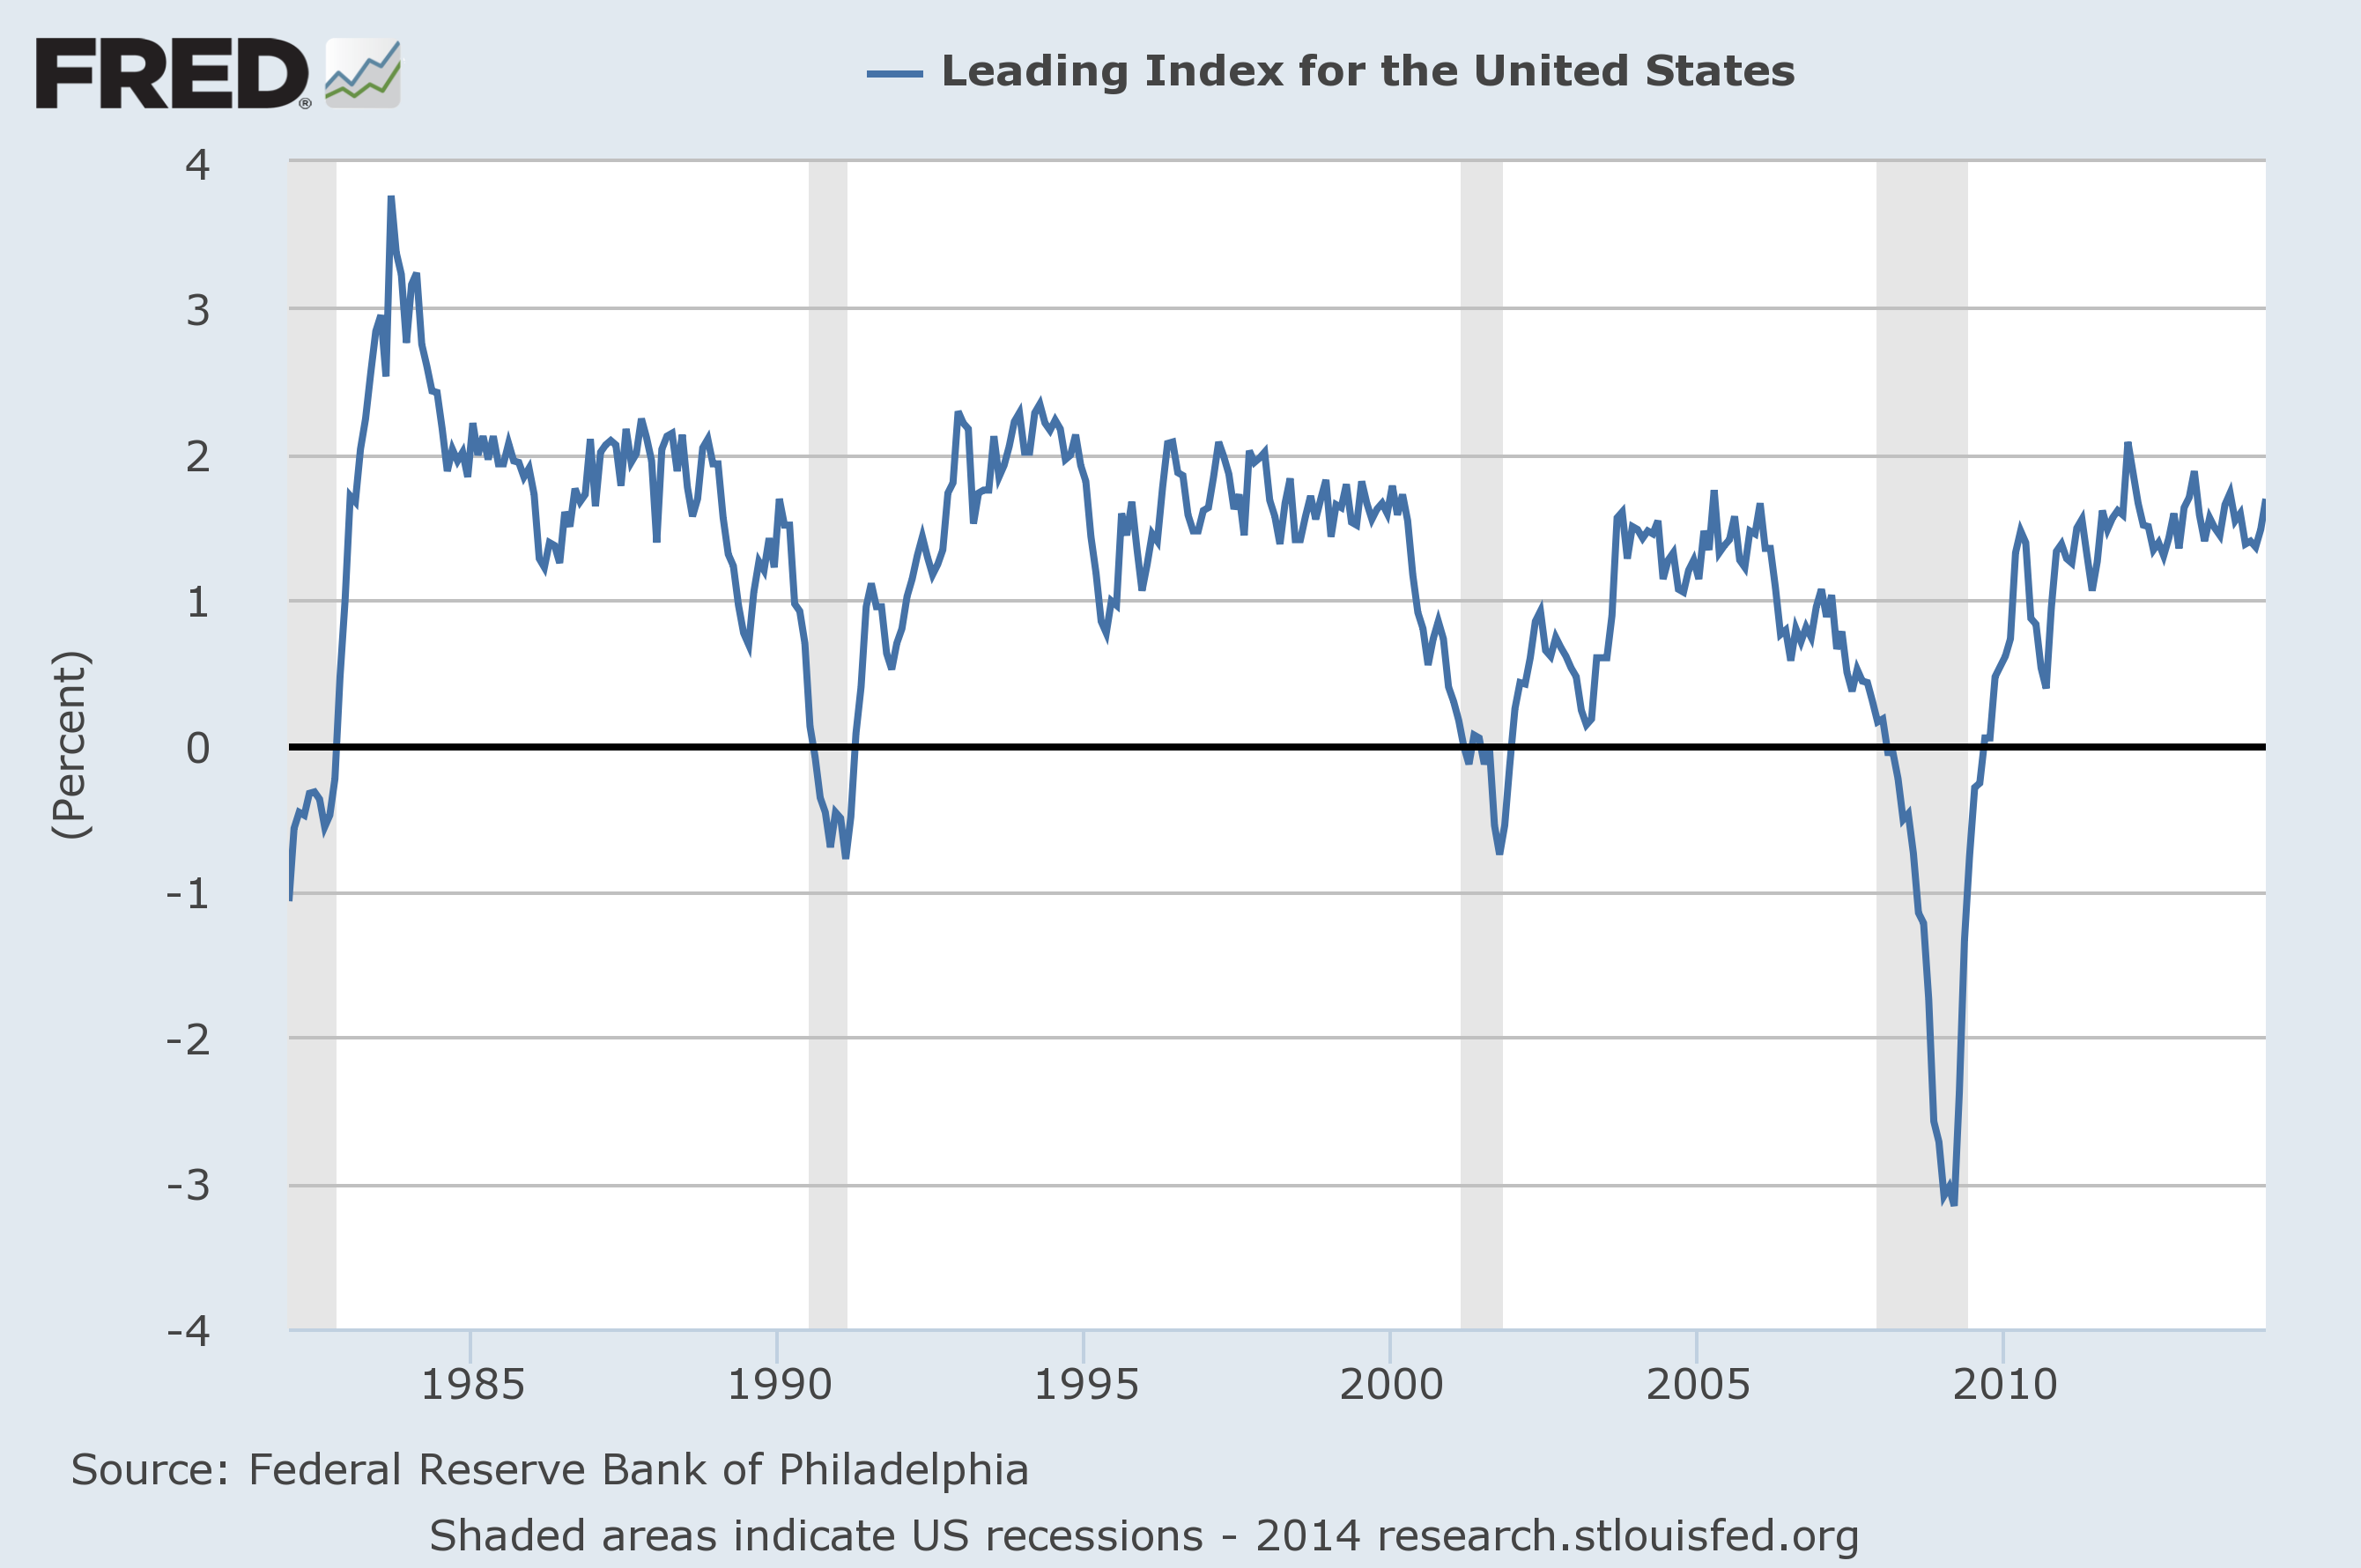 fed.leading.index